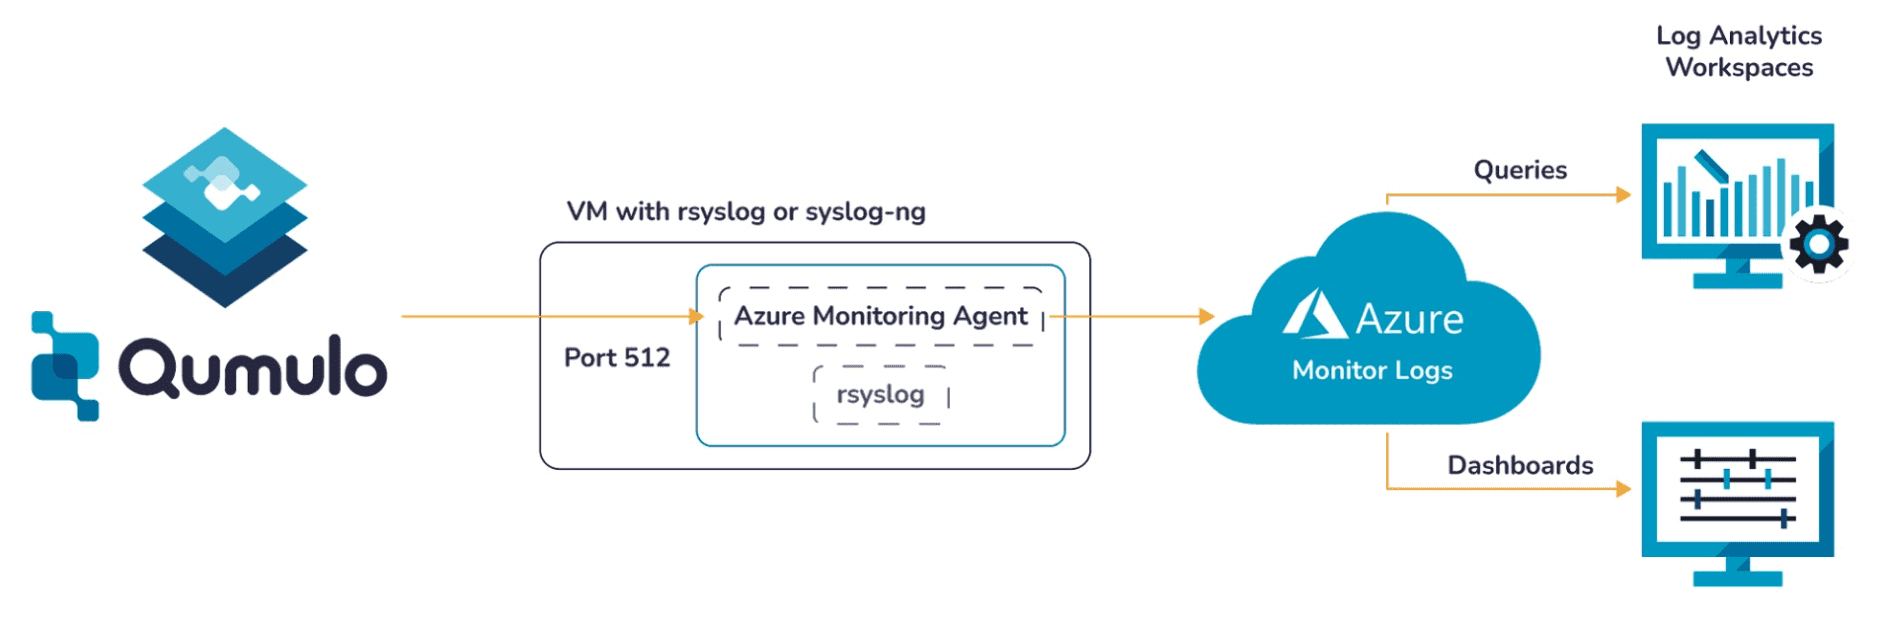 auditing and syslog forwarding through the Azure Monitor Agent